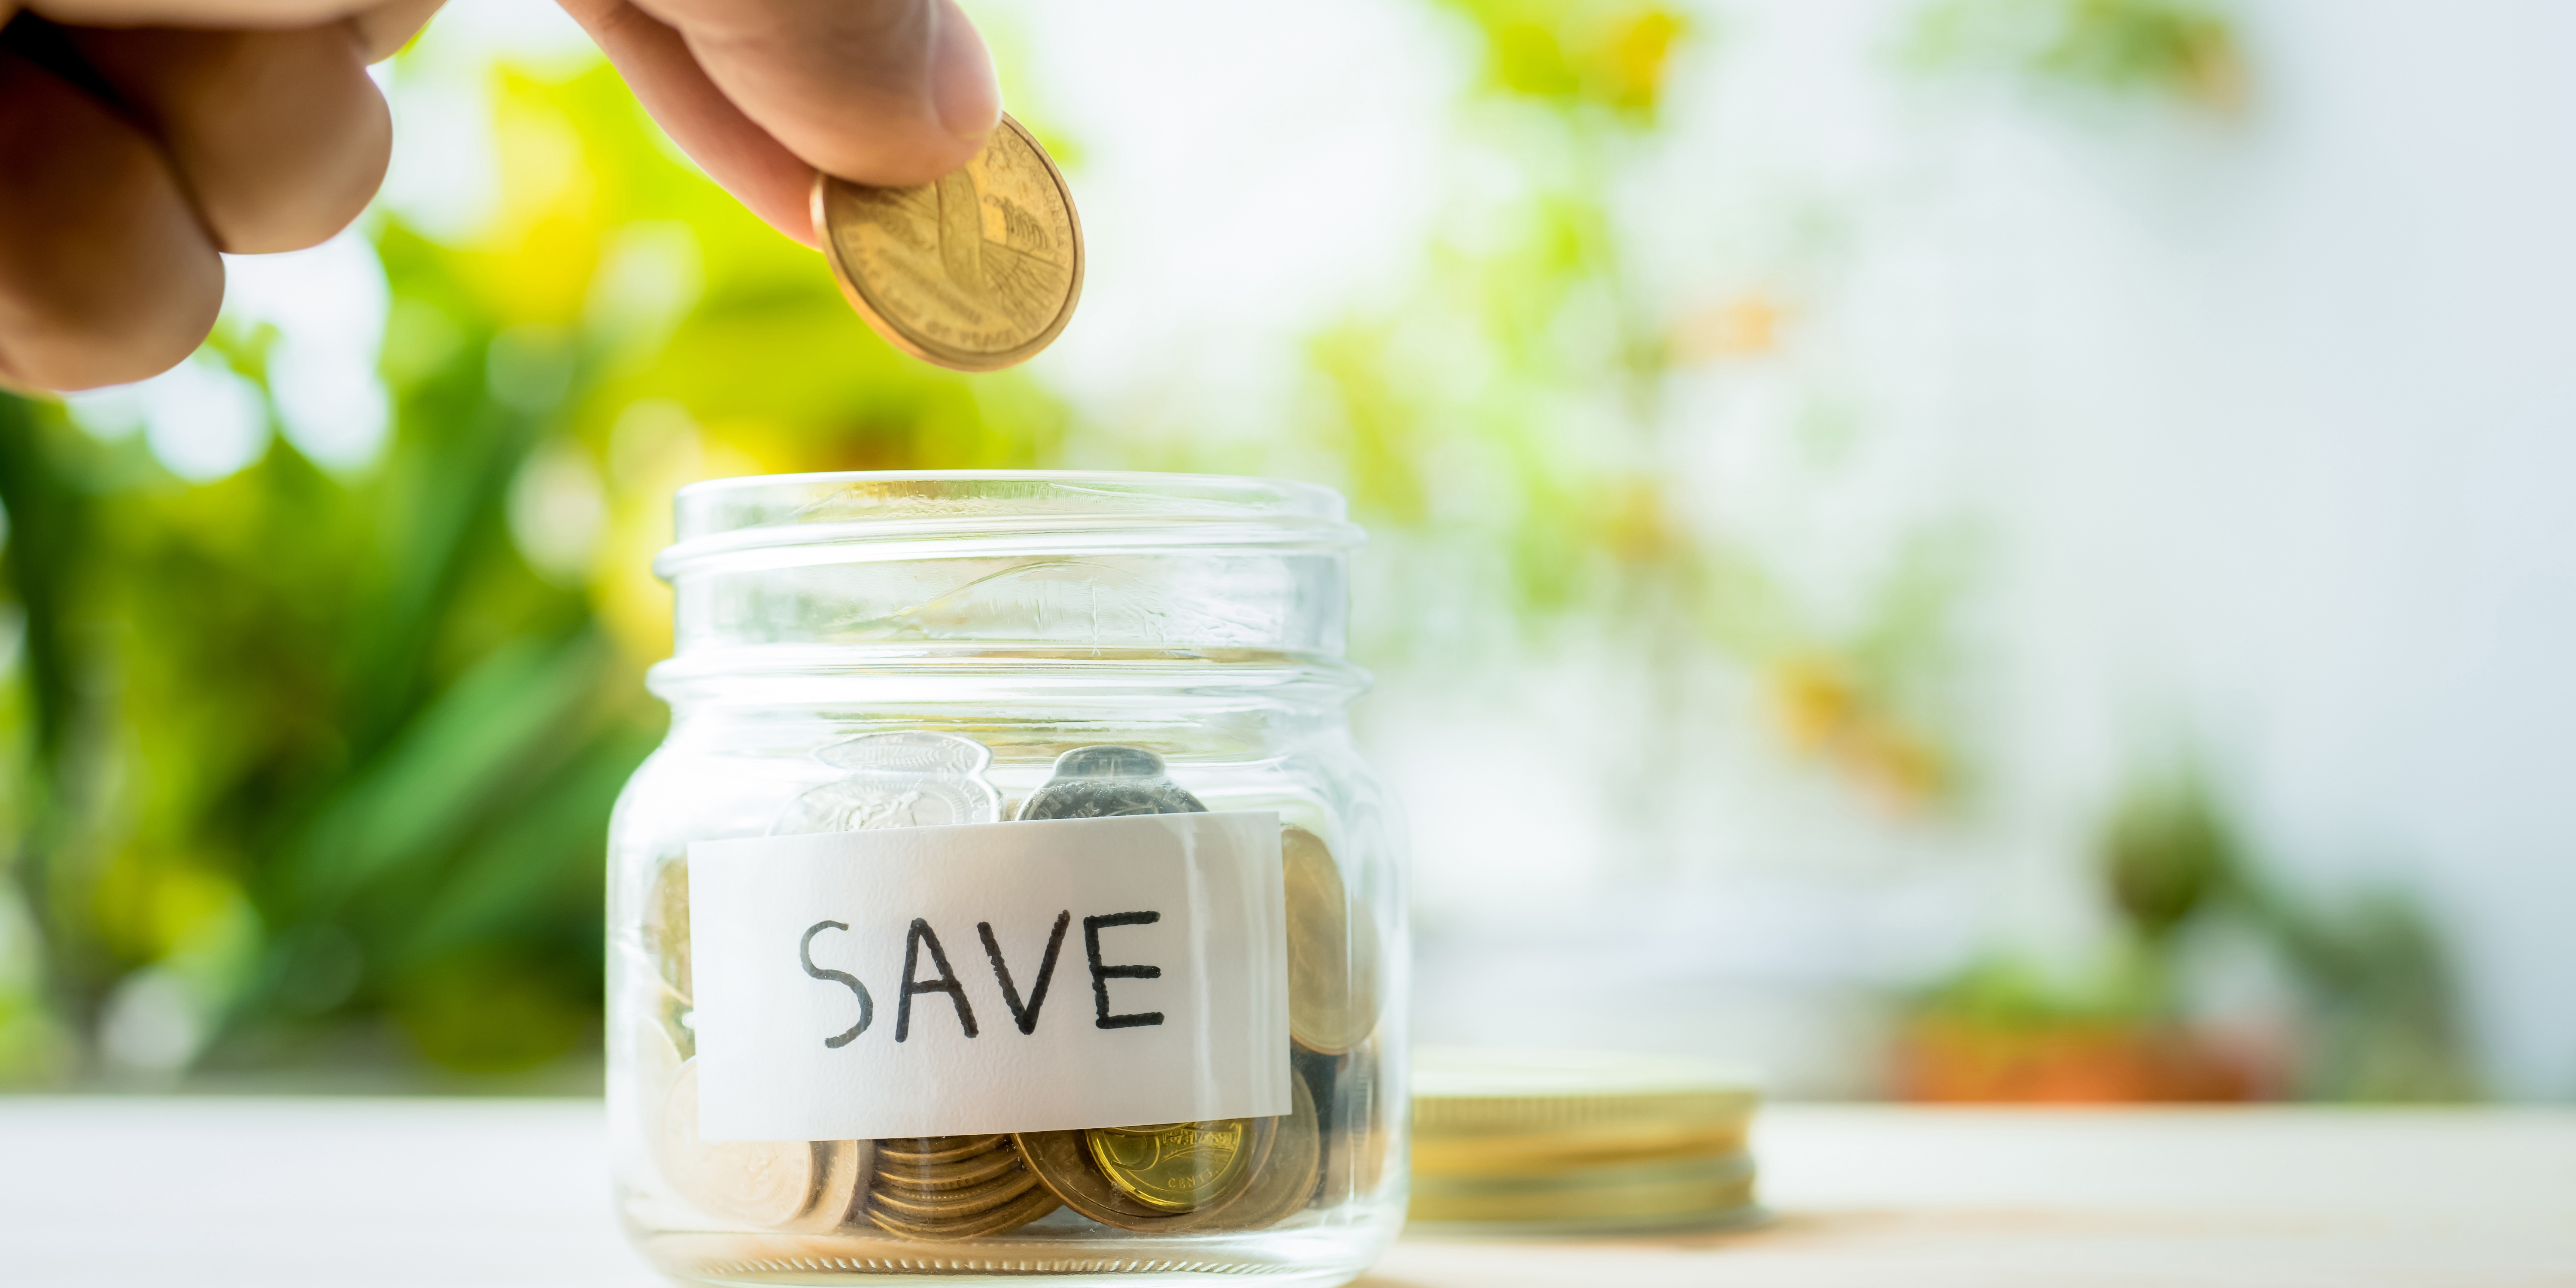 save money coin jar hand_750x375.jpg